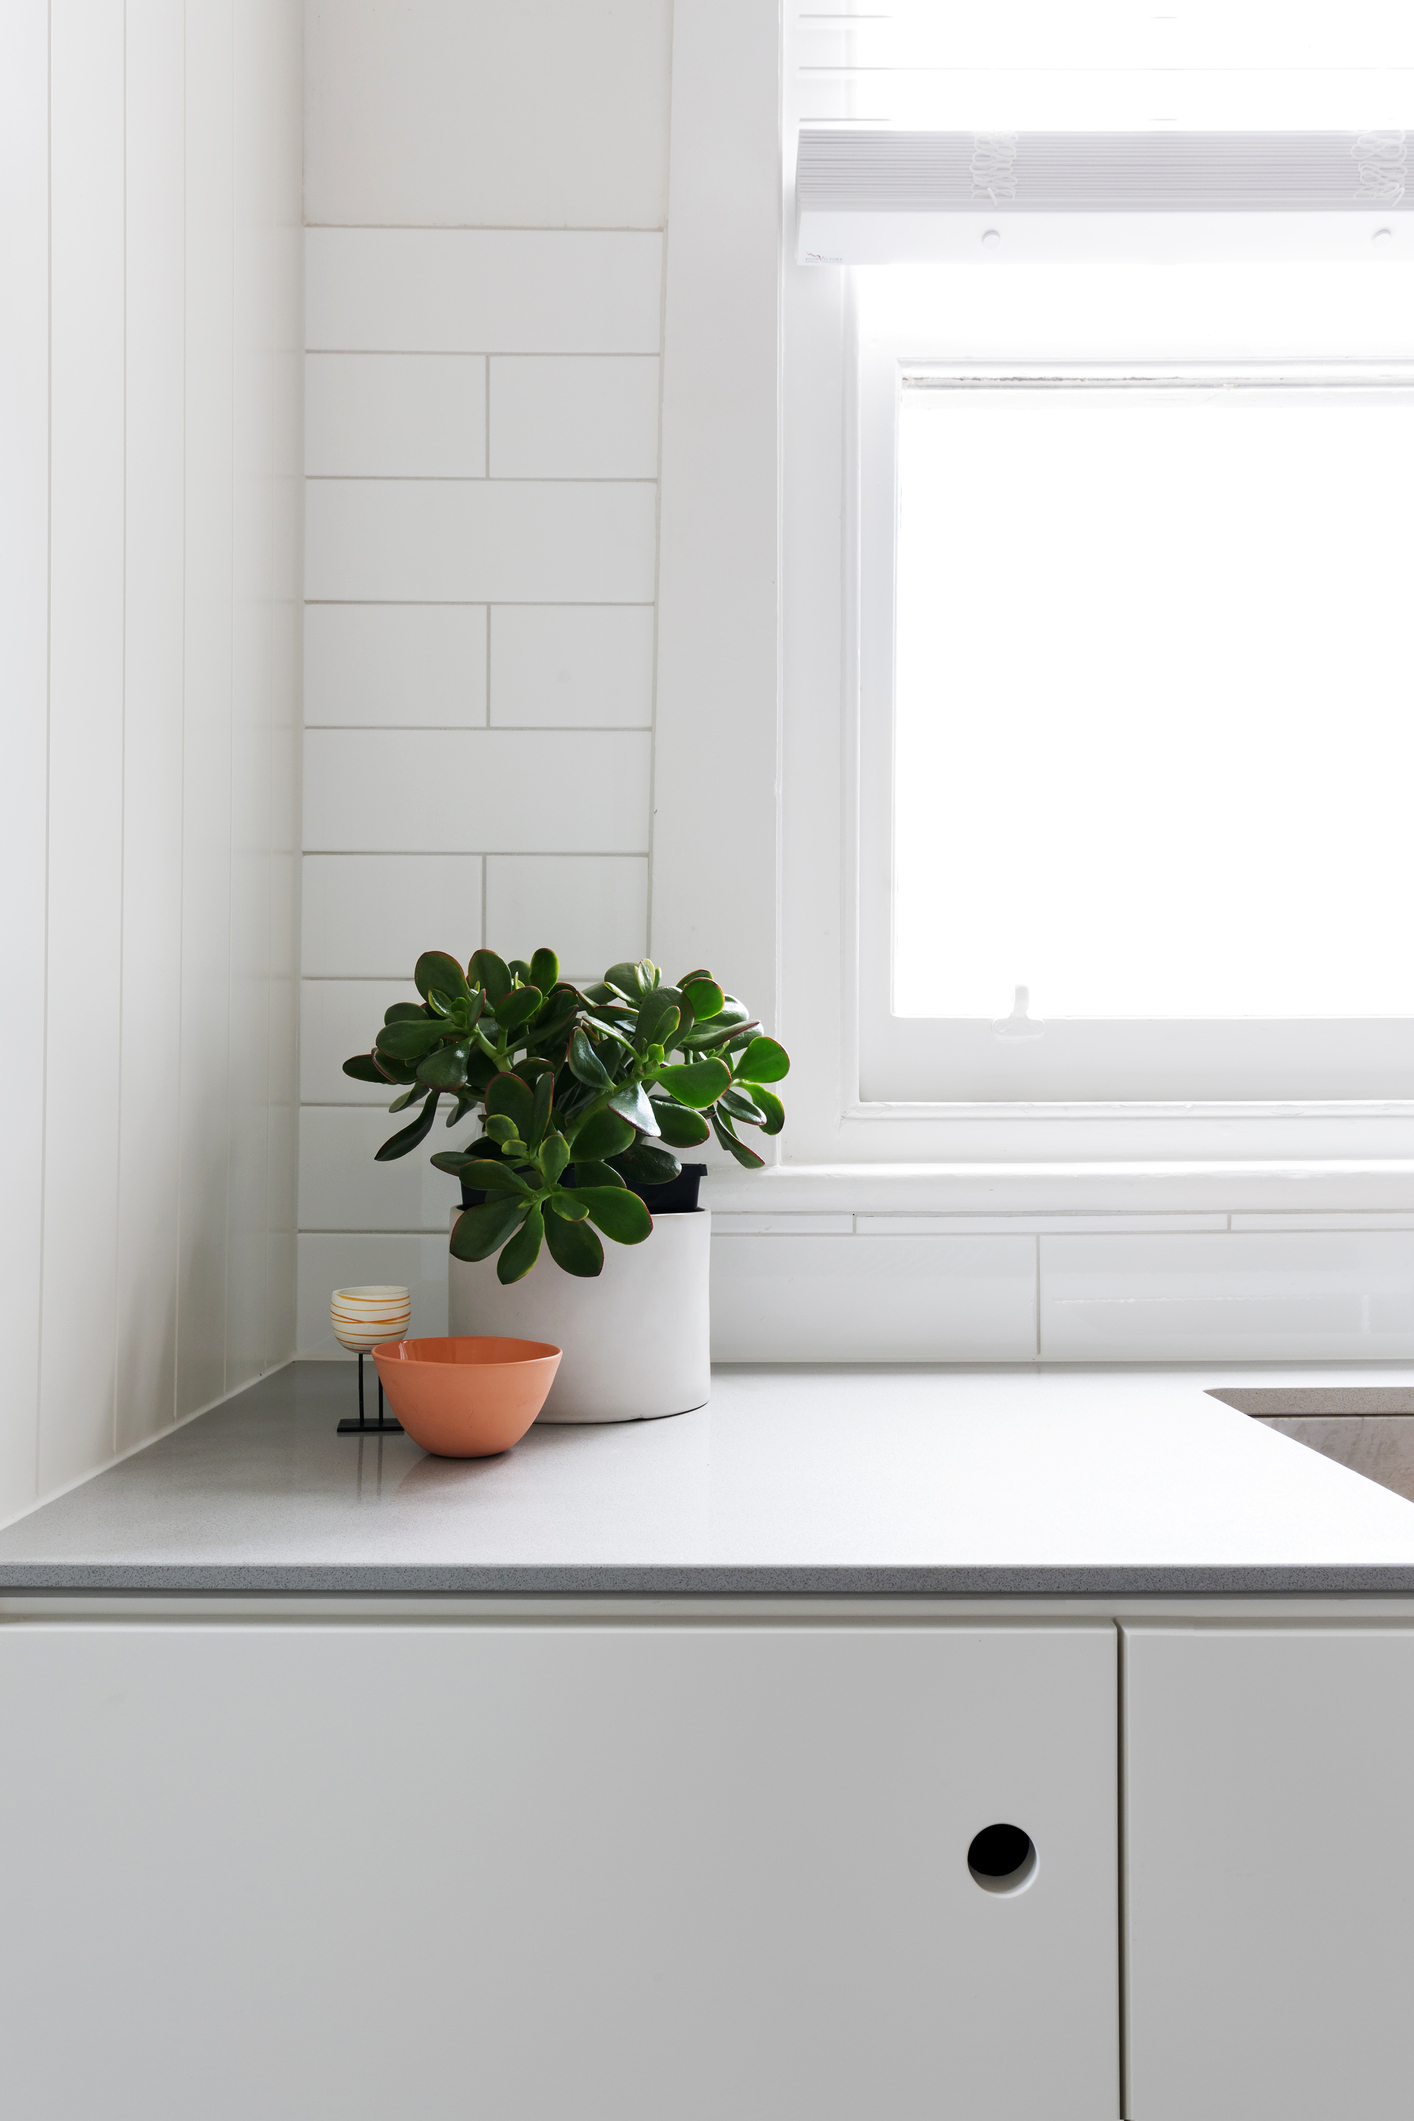 laminate countertop with potted plant